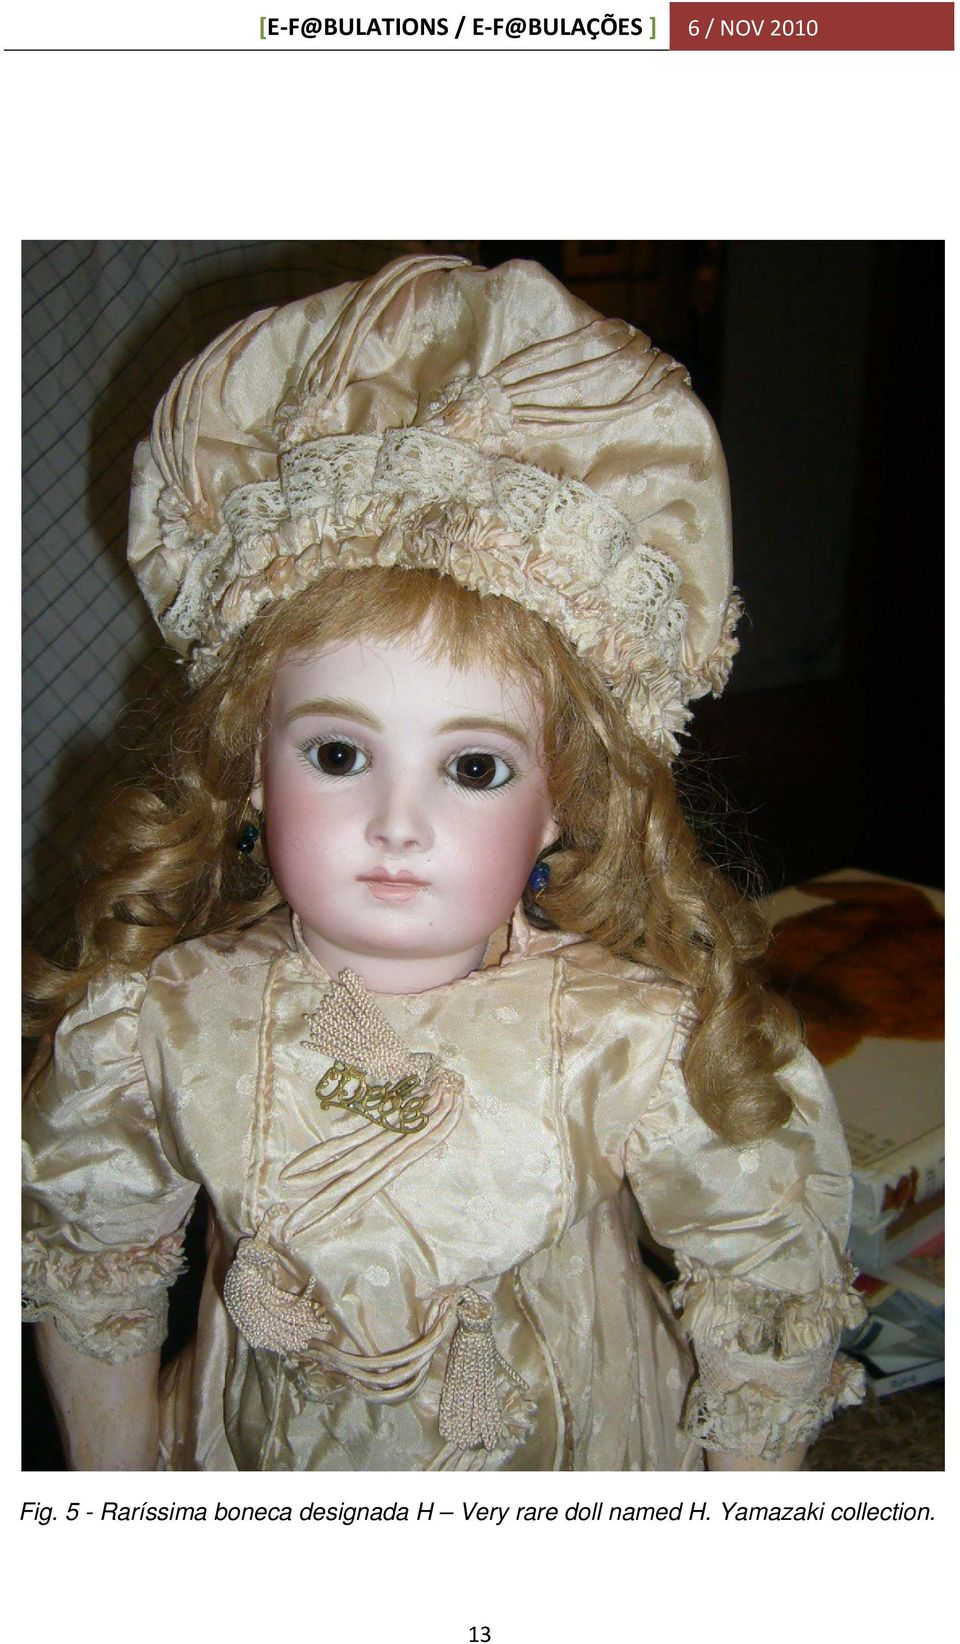 Very rare doll named